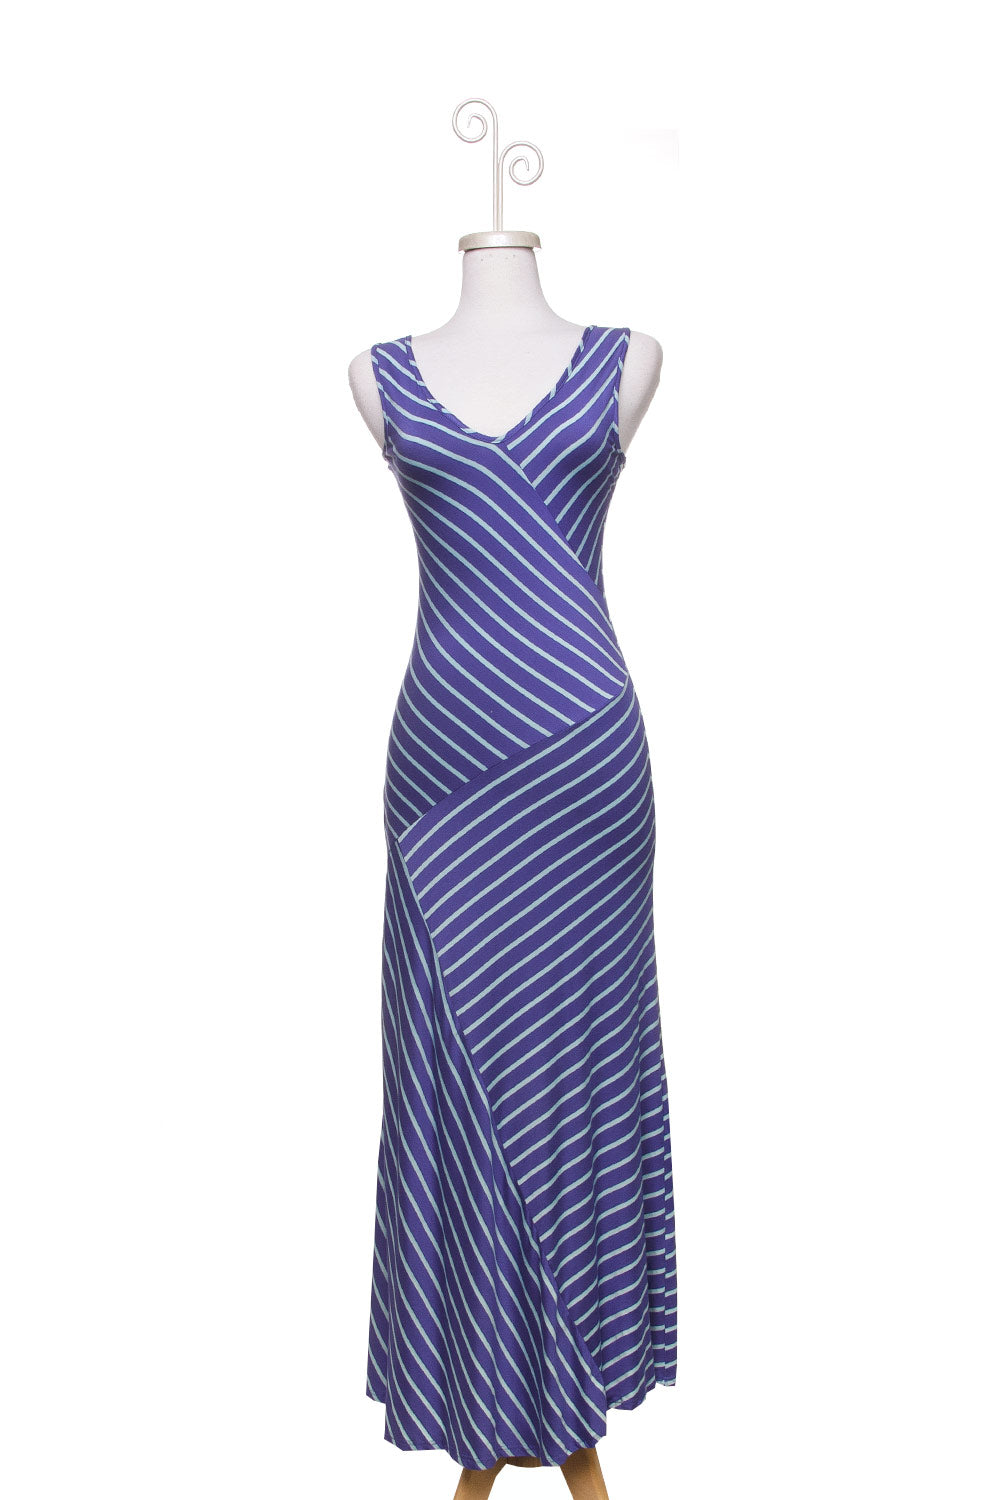 Type 1 Stripe up a Conversation Dress